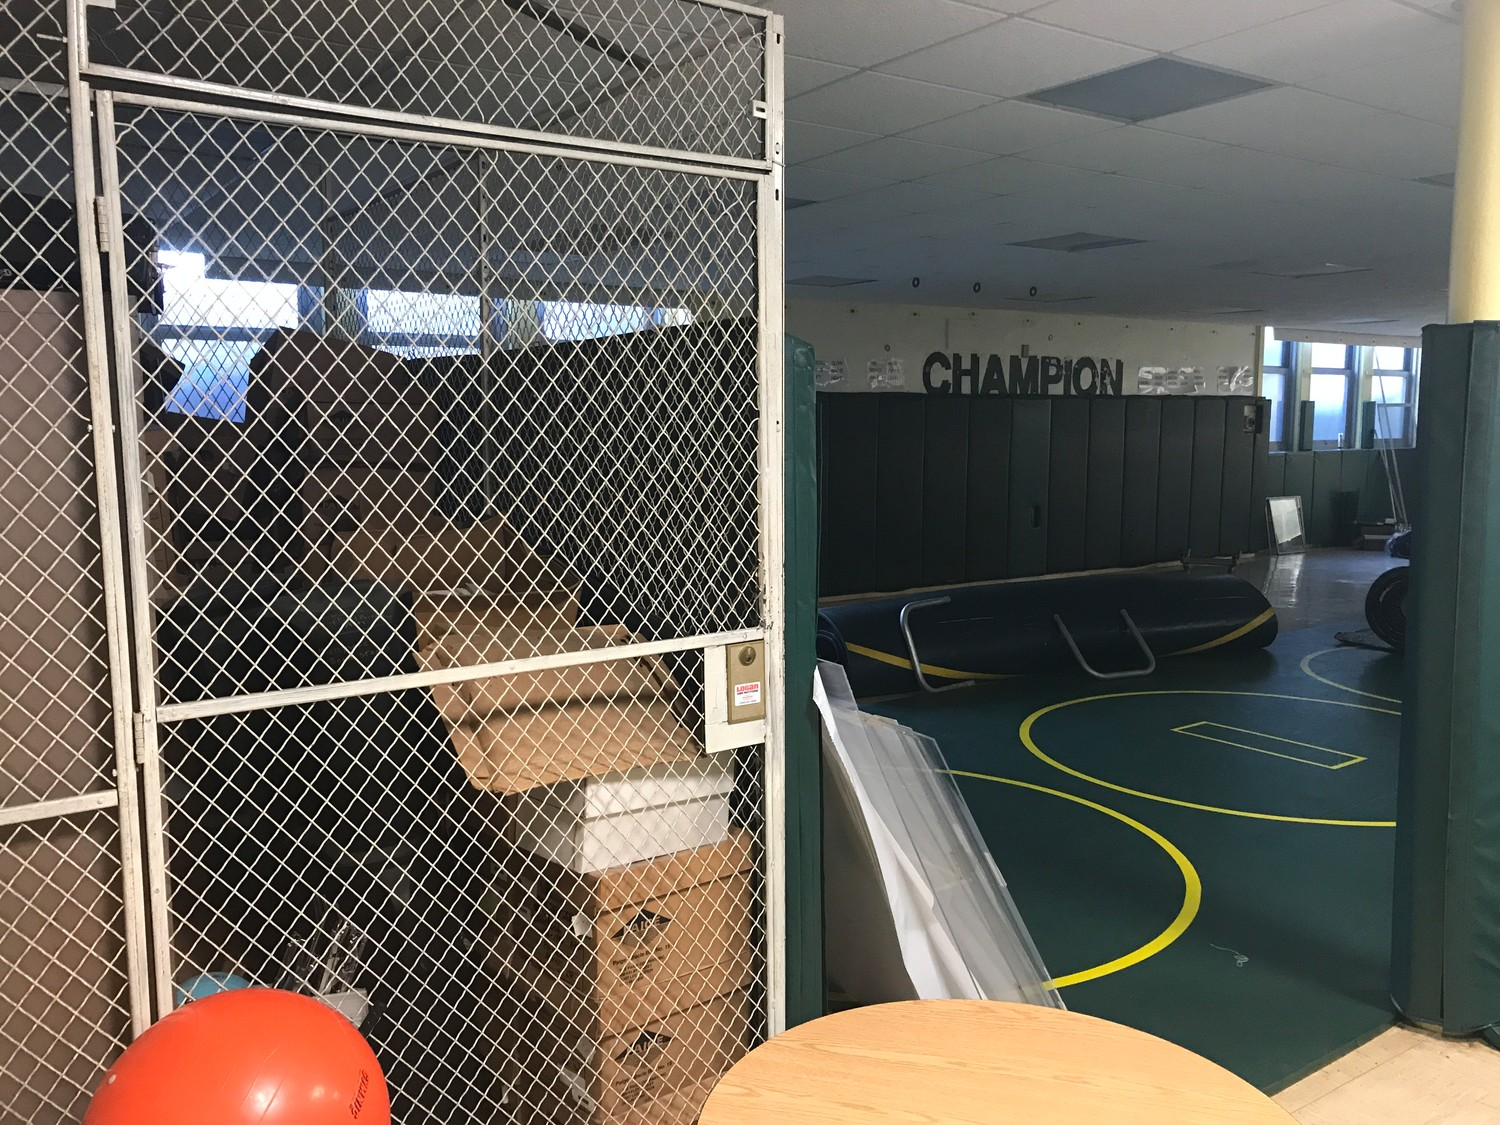 The dingy wrestling room at the Lynbrook Kindergarten Center — where the high school team practices — also doubles as storage space for district records.